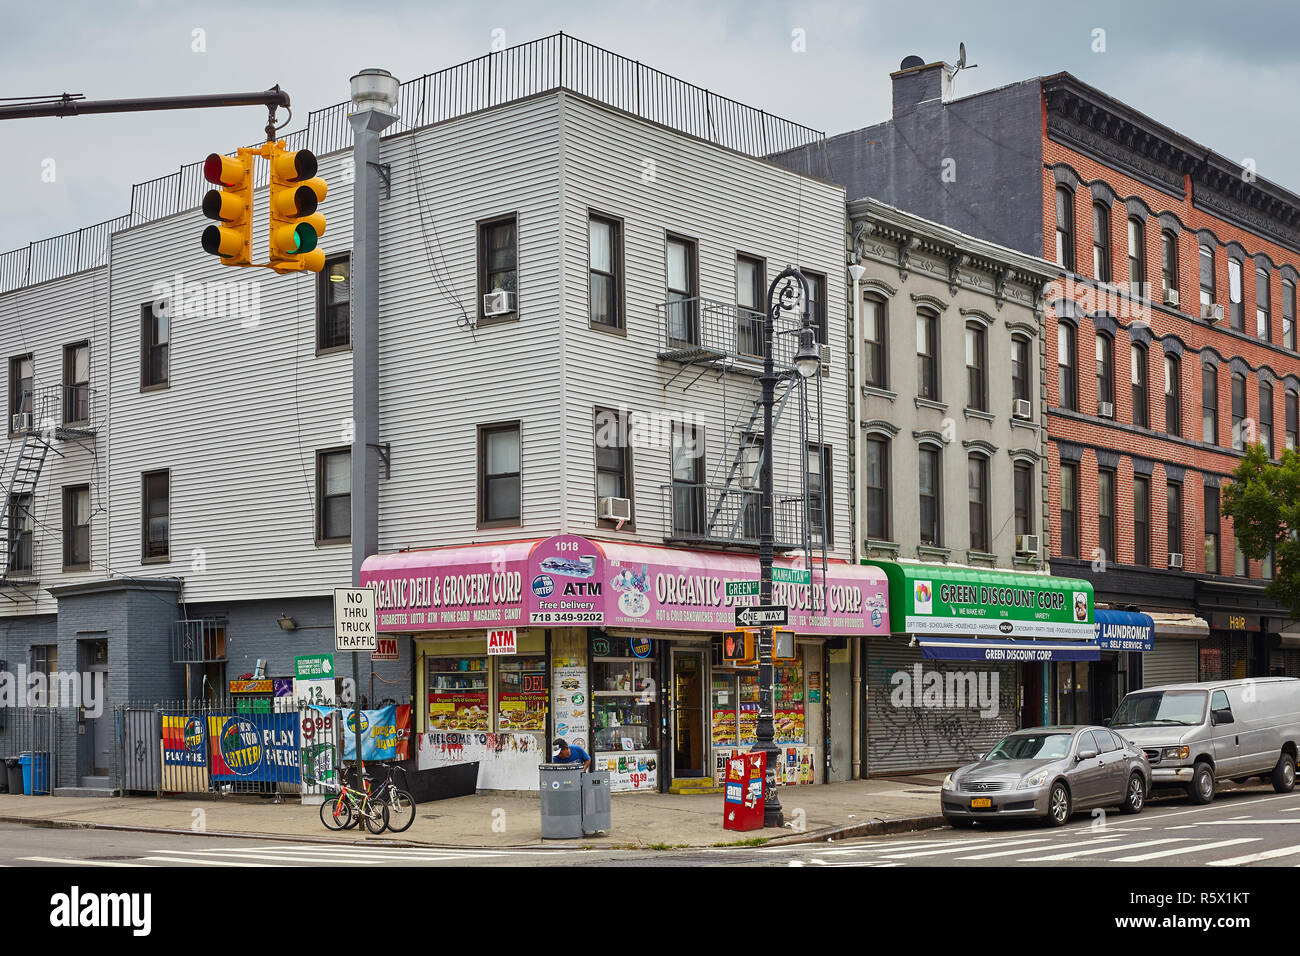 New York, USA - July 04, 2018: Shops at the corner of Manhattan Avenue and Green St. Greenpoint neighborhood is also know as Little Poland. - Stock Image